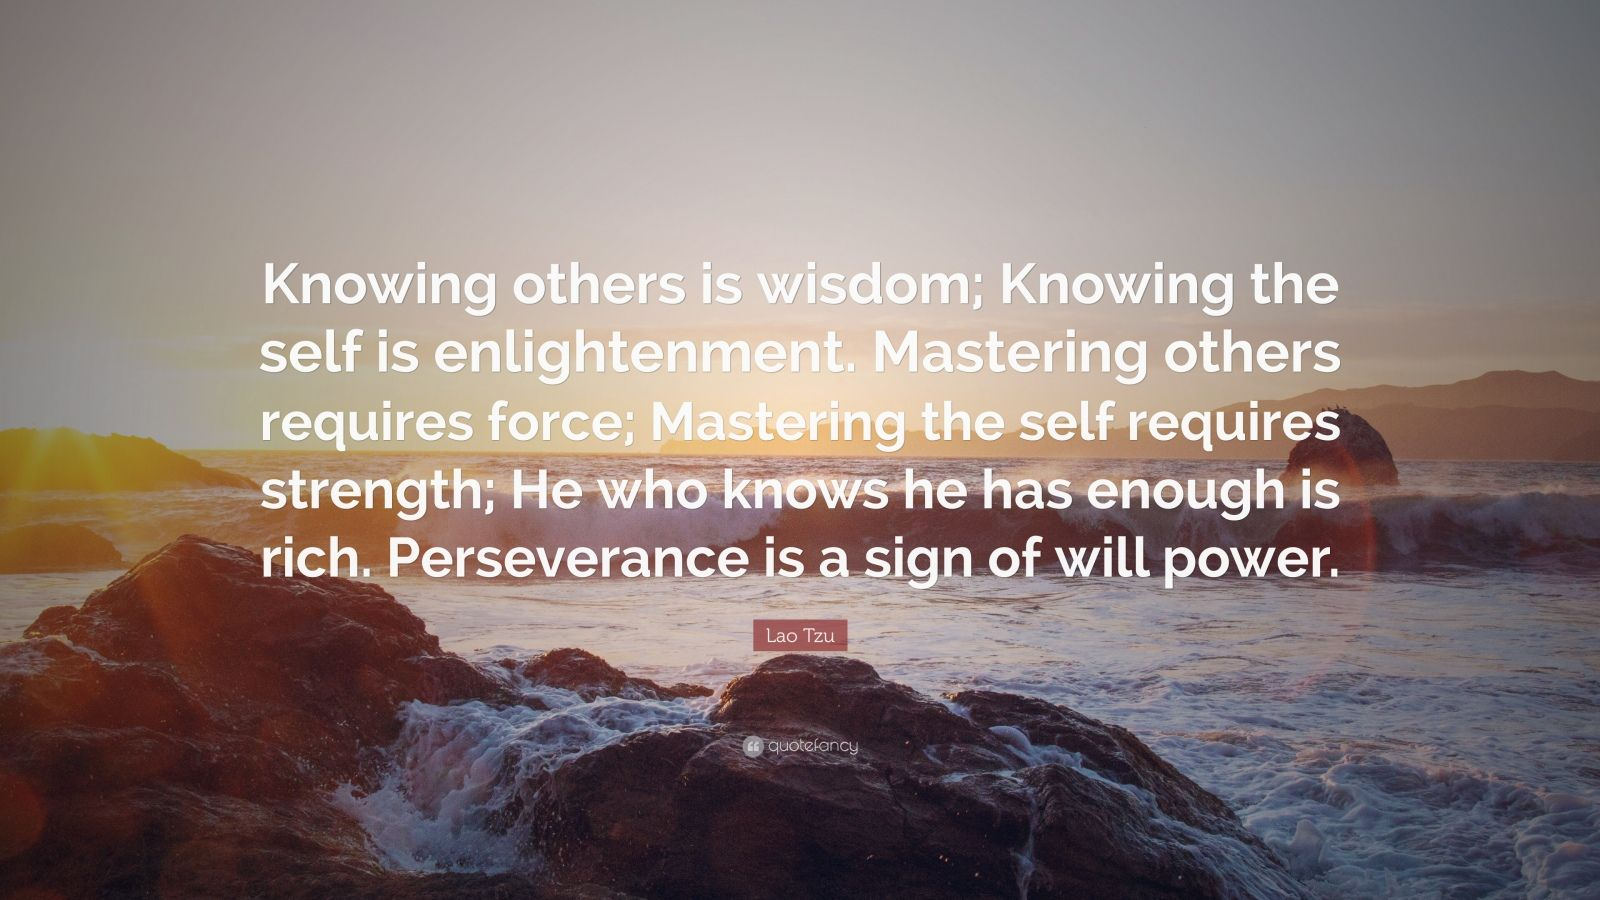 """Lao Tzu Quote: """"Knowing others is wisdom; Knowing the self is enlightenment. Mastering others requires force; Mastering the self requires strength; He who knows he has enough is rich. Perseverance is a sign of will power."""""""